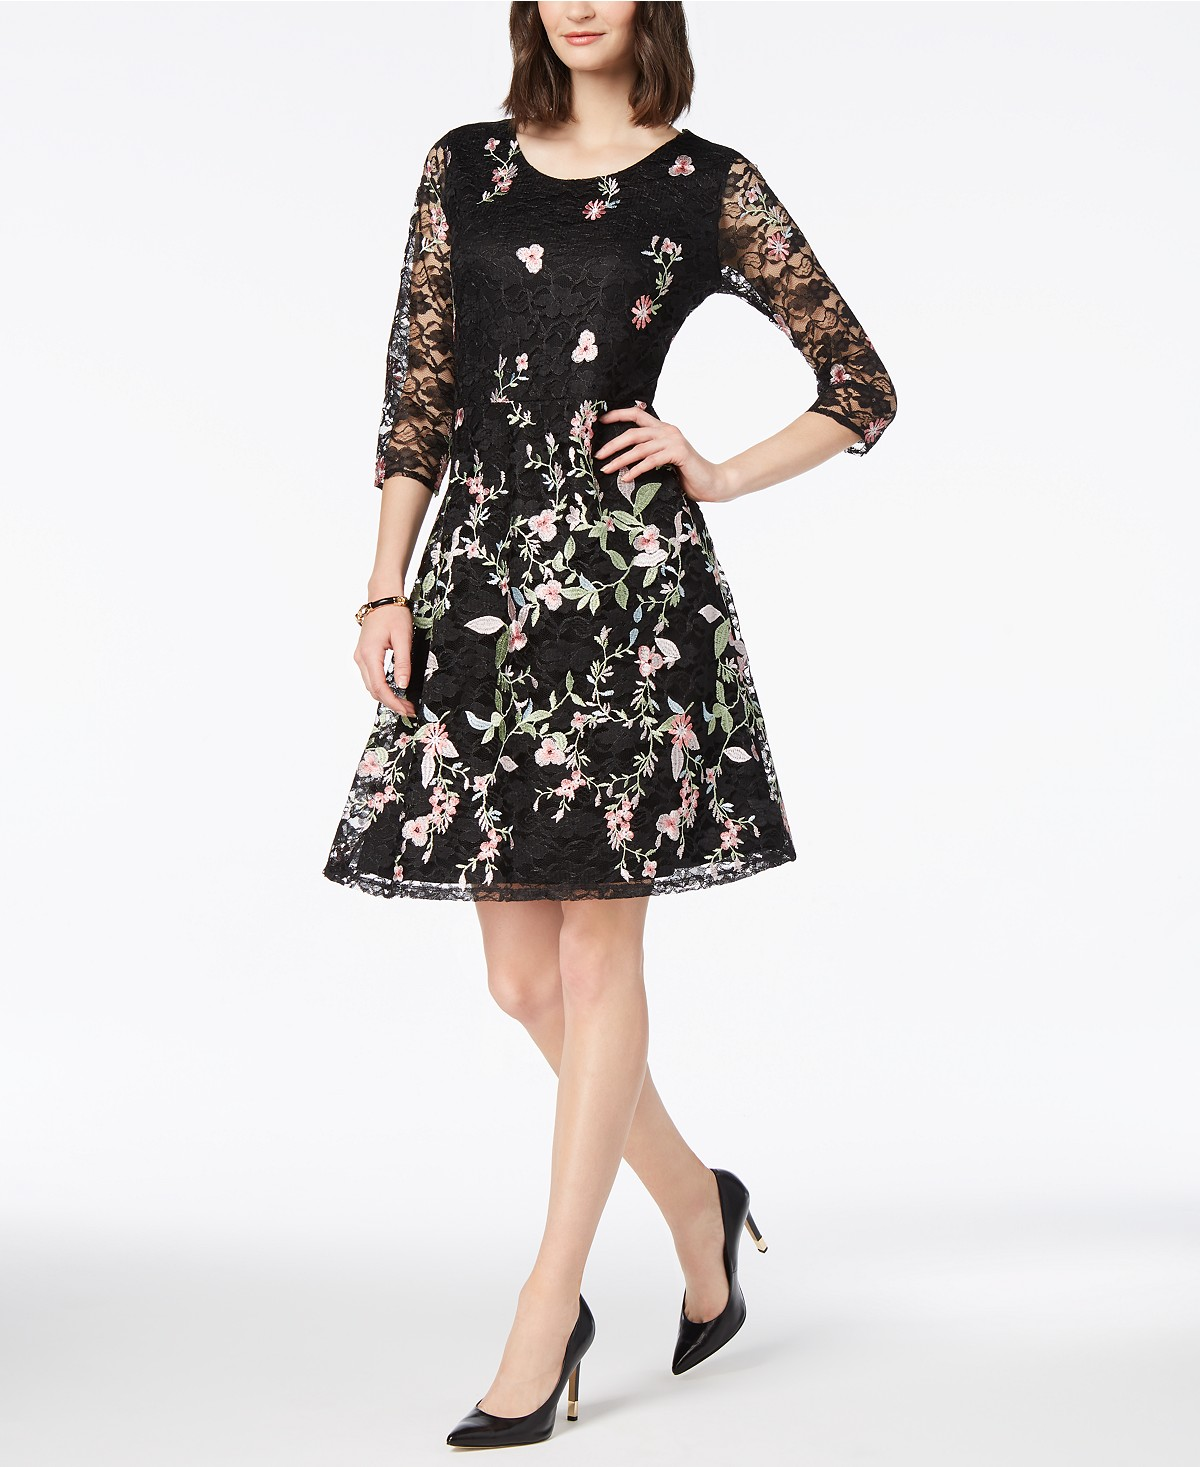 MACYS LAST ACT DRESS CLEARANCE SALE NOW STARTING AT $25!